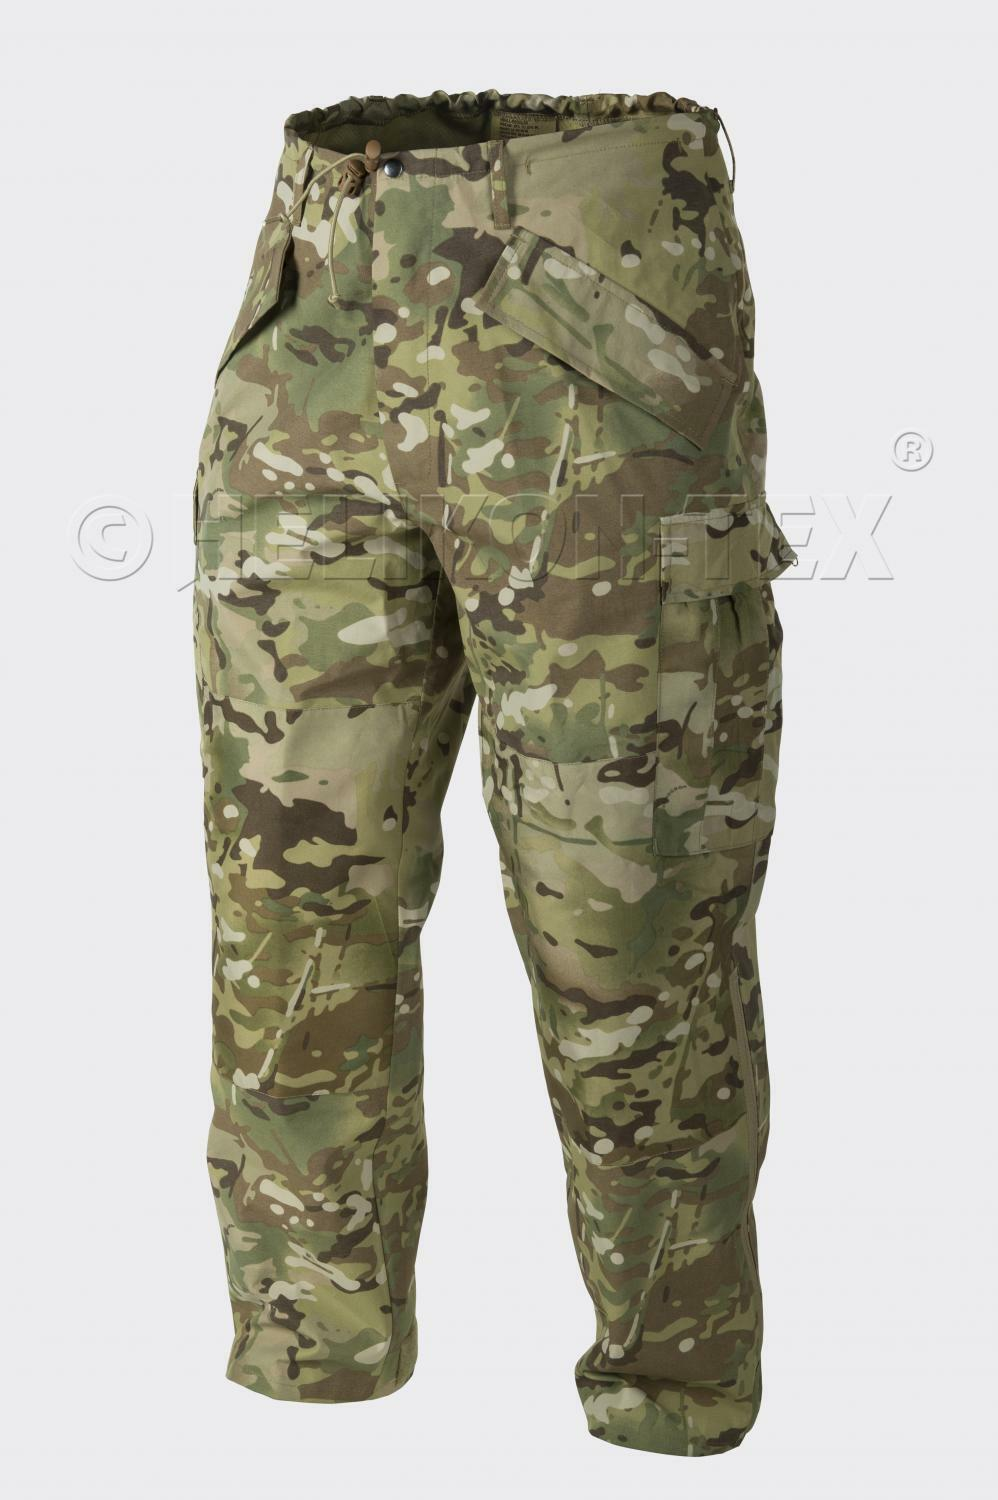 HELIKON TEX US GEN II Army ECWCS Wet Wet Wet Cold Weather Hose CAMOGROM PANTS S Small 33c9ae